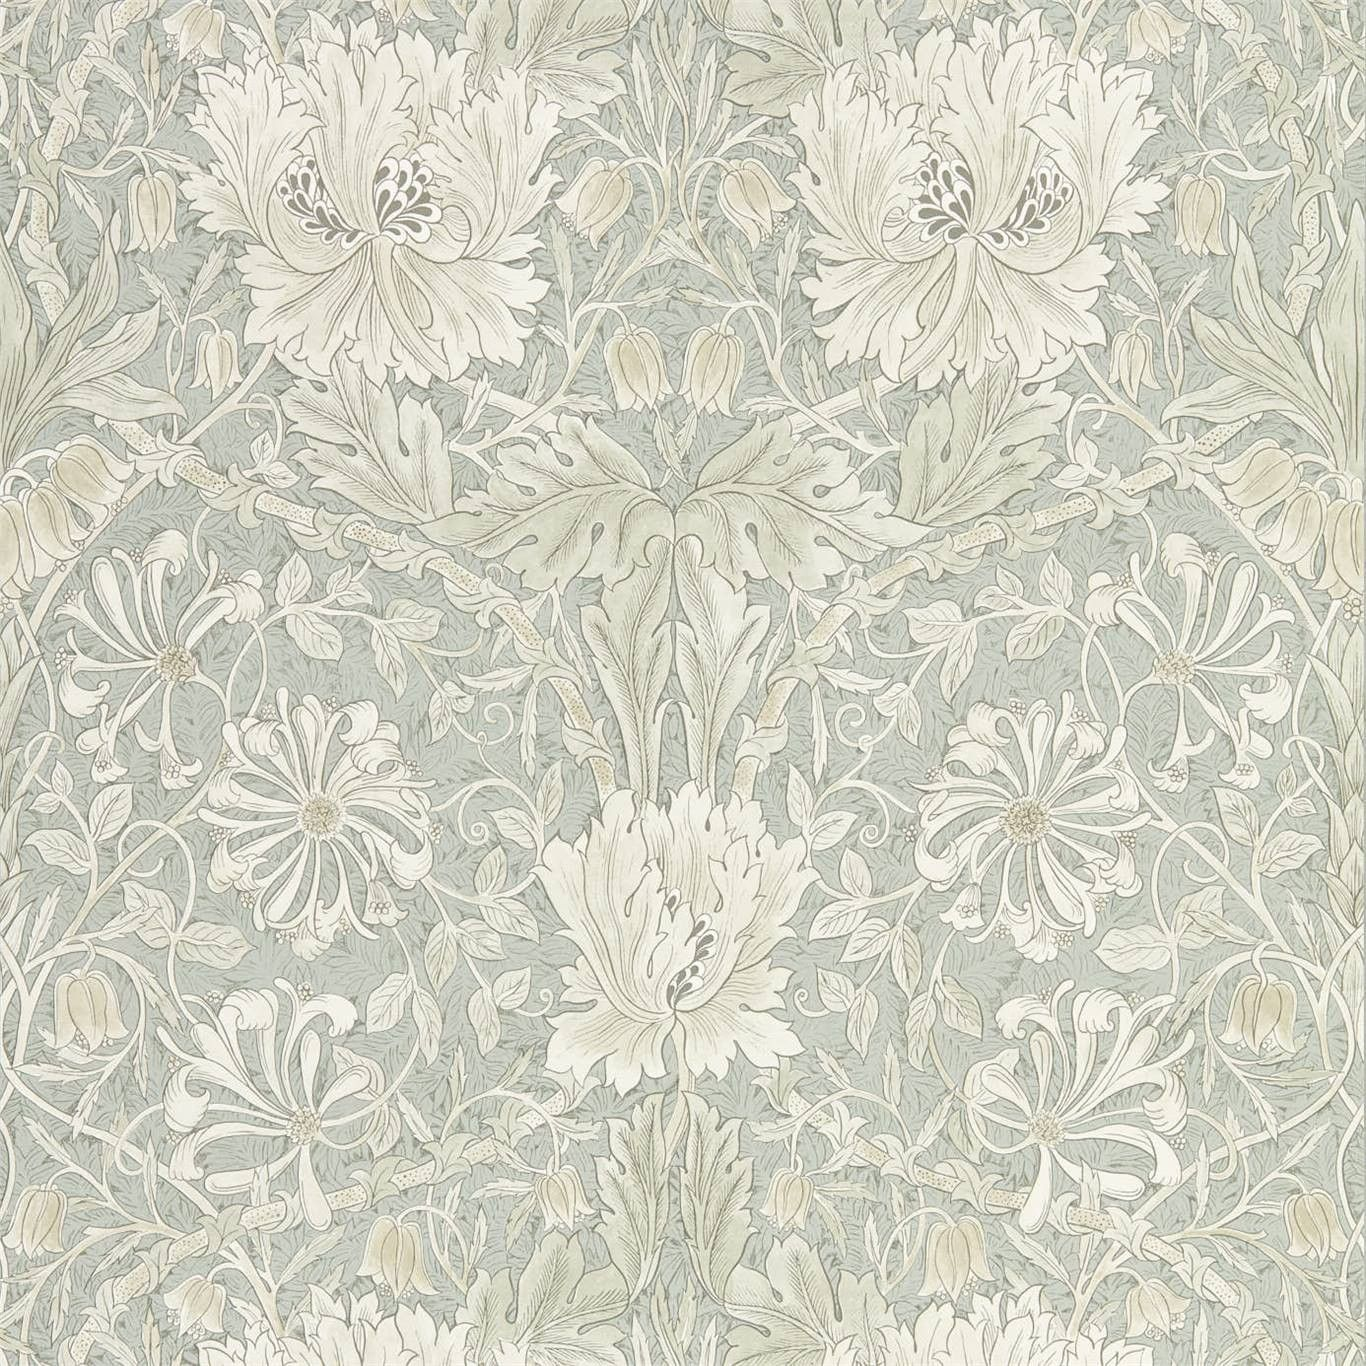 Pin by Stephanie Cary on Arts & CraftsStyle Textiles